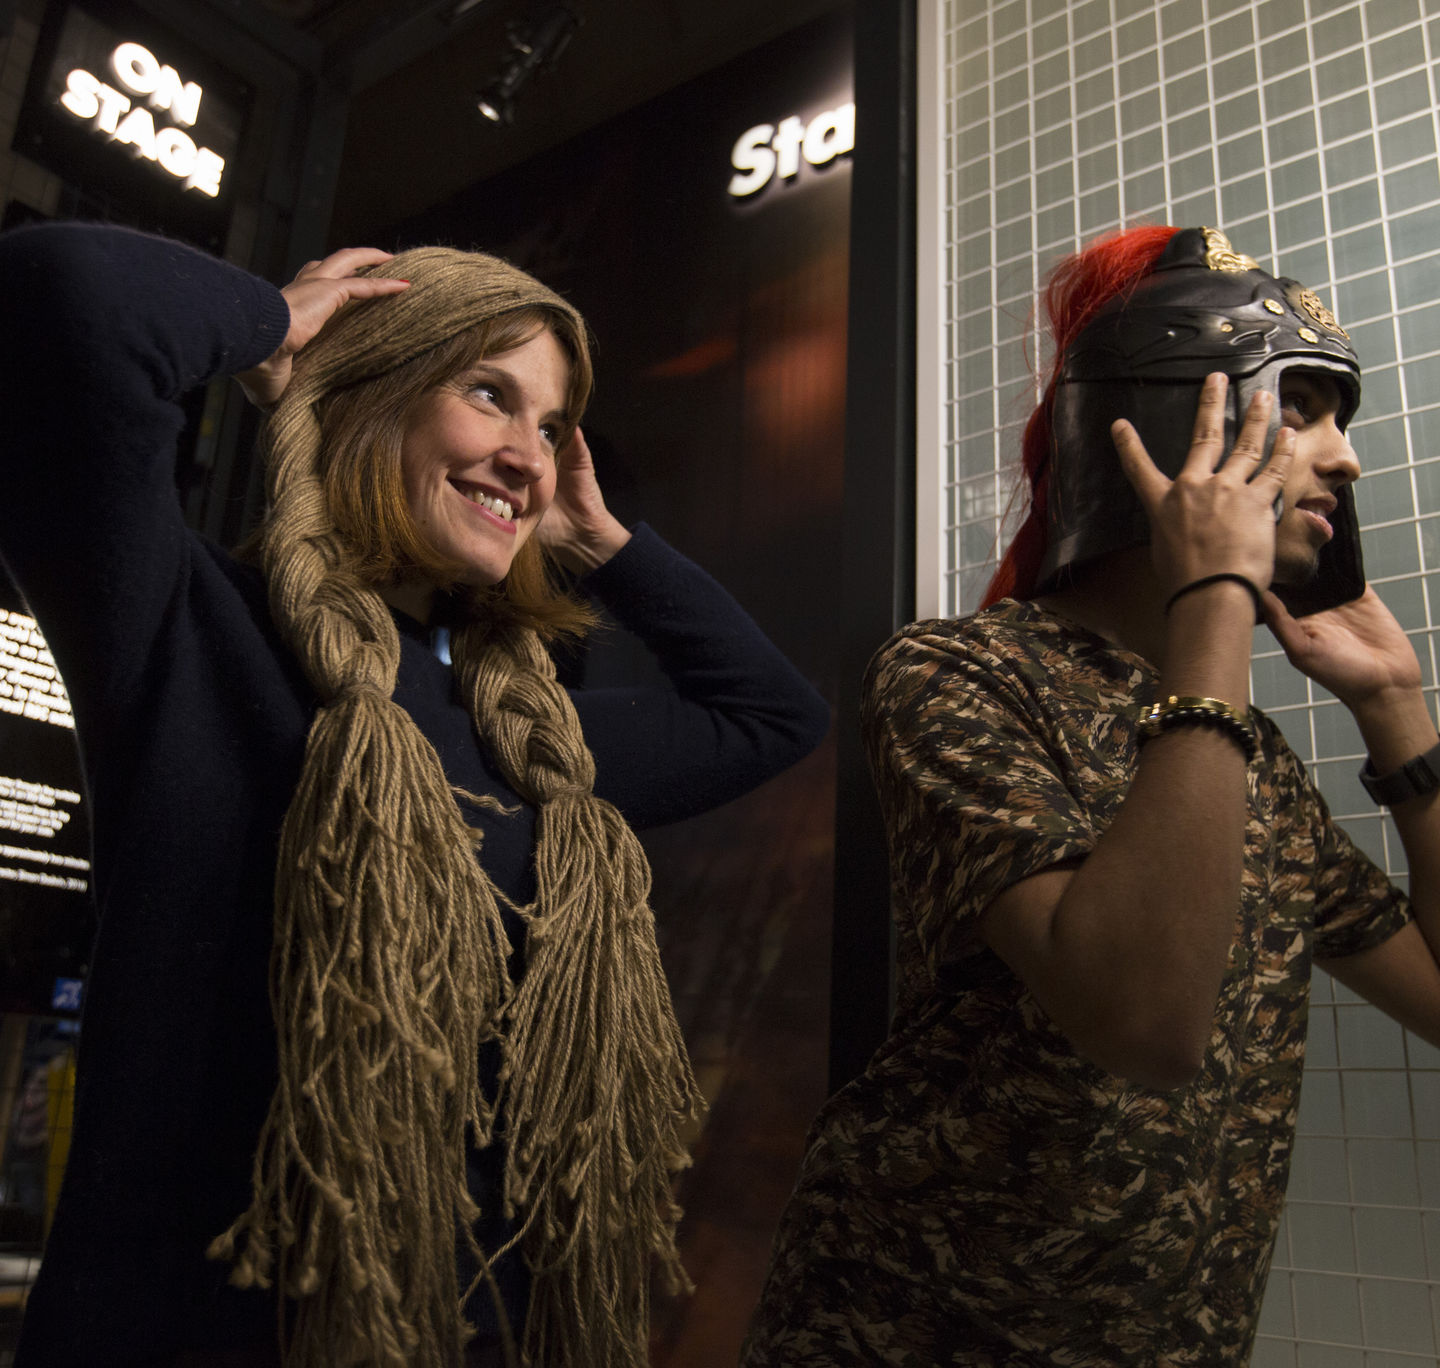 A woman trying on long plaited hair and a man trying on a metal helmet